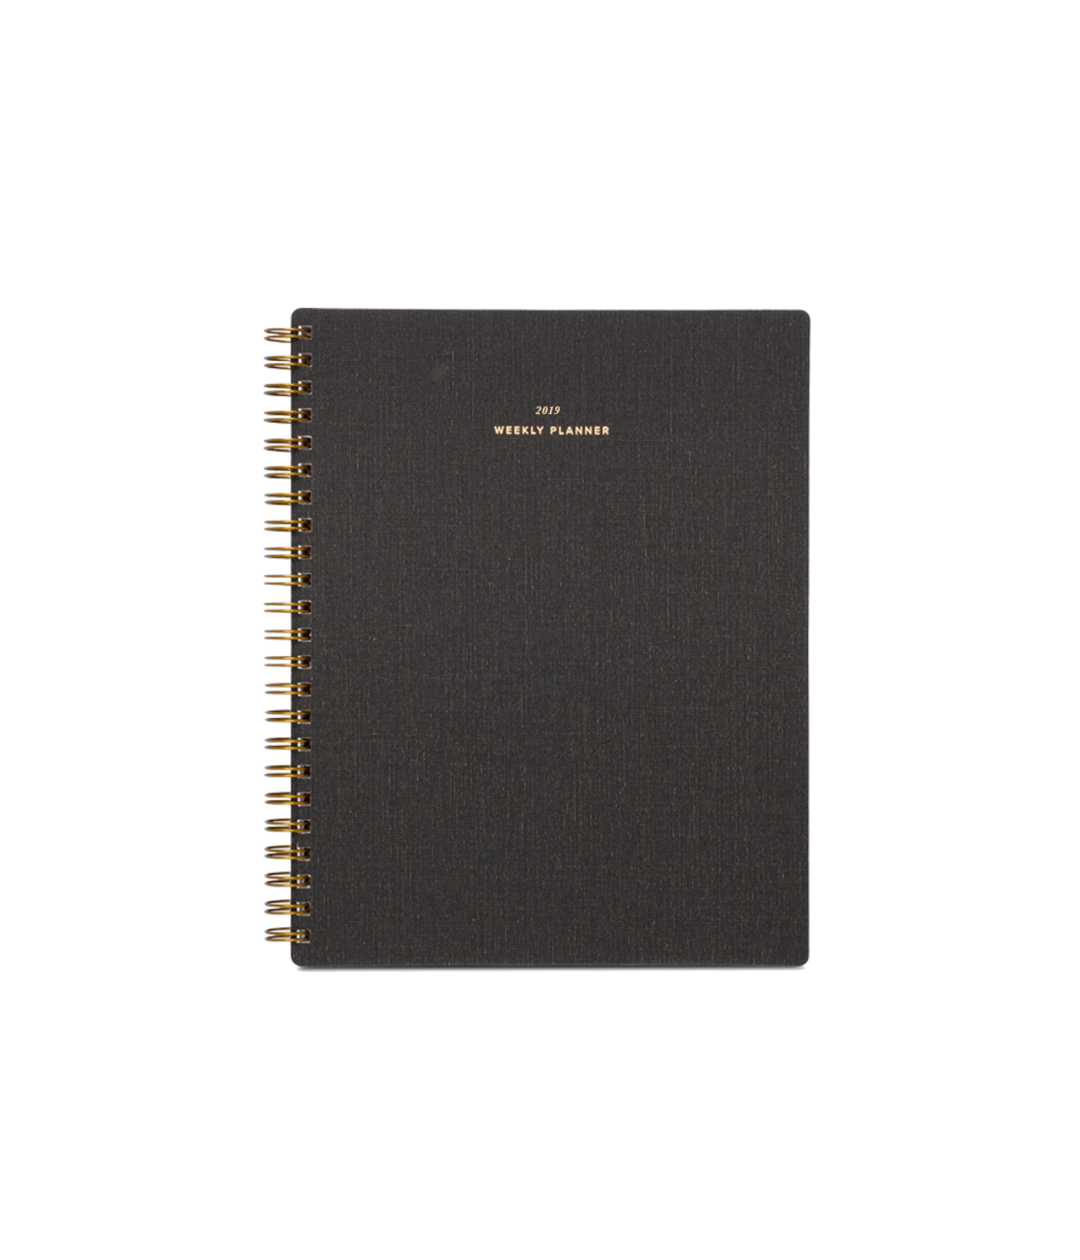 Weekly Notebook Planner in Charcoal Notebook planner